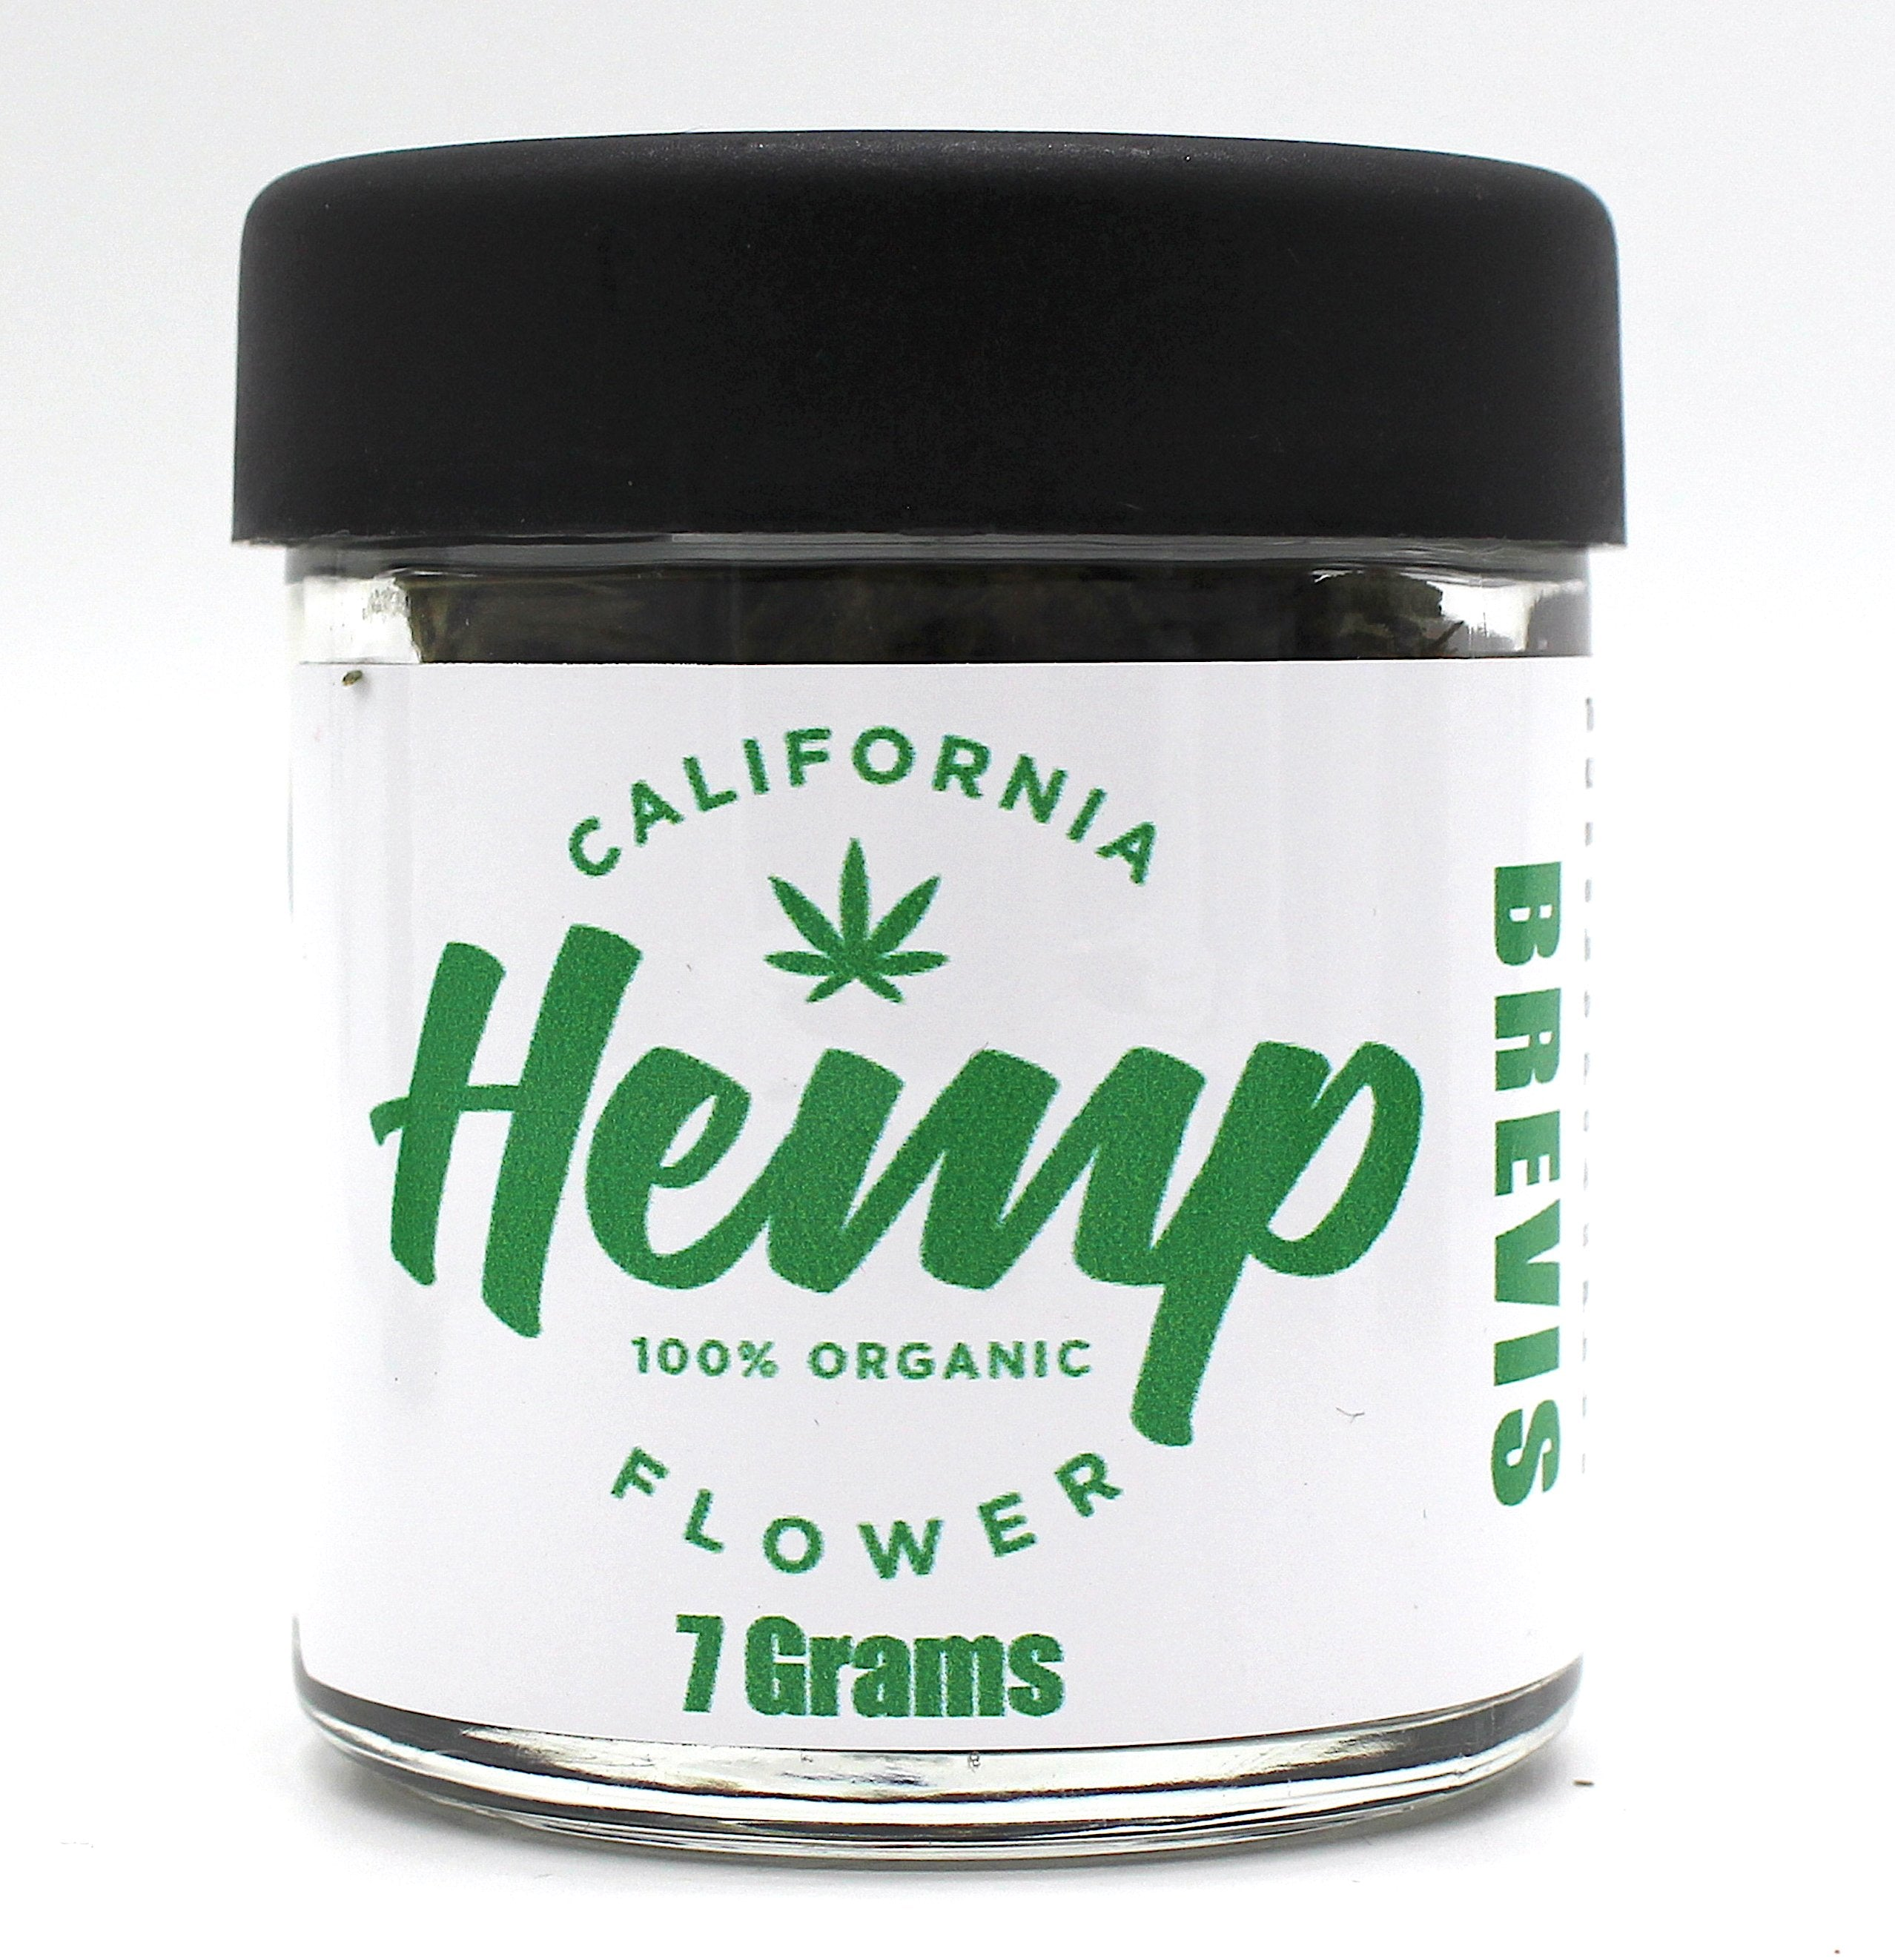 California Hemp Flower Organic 7 grams